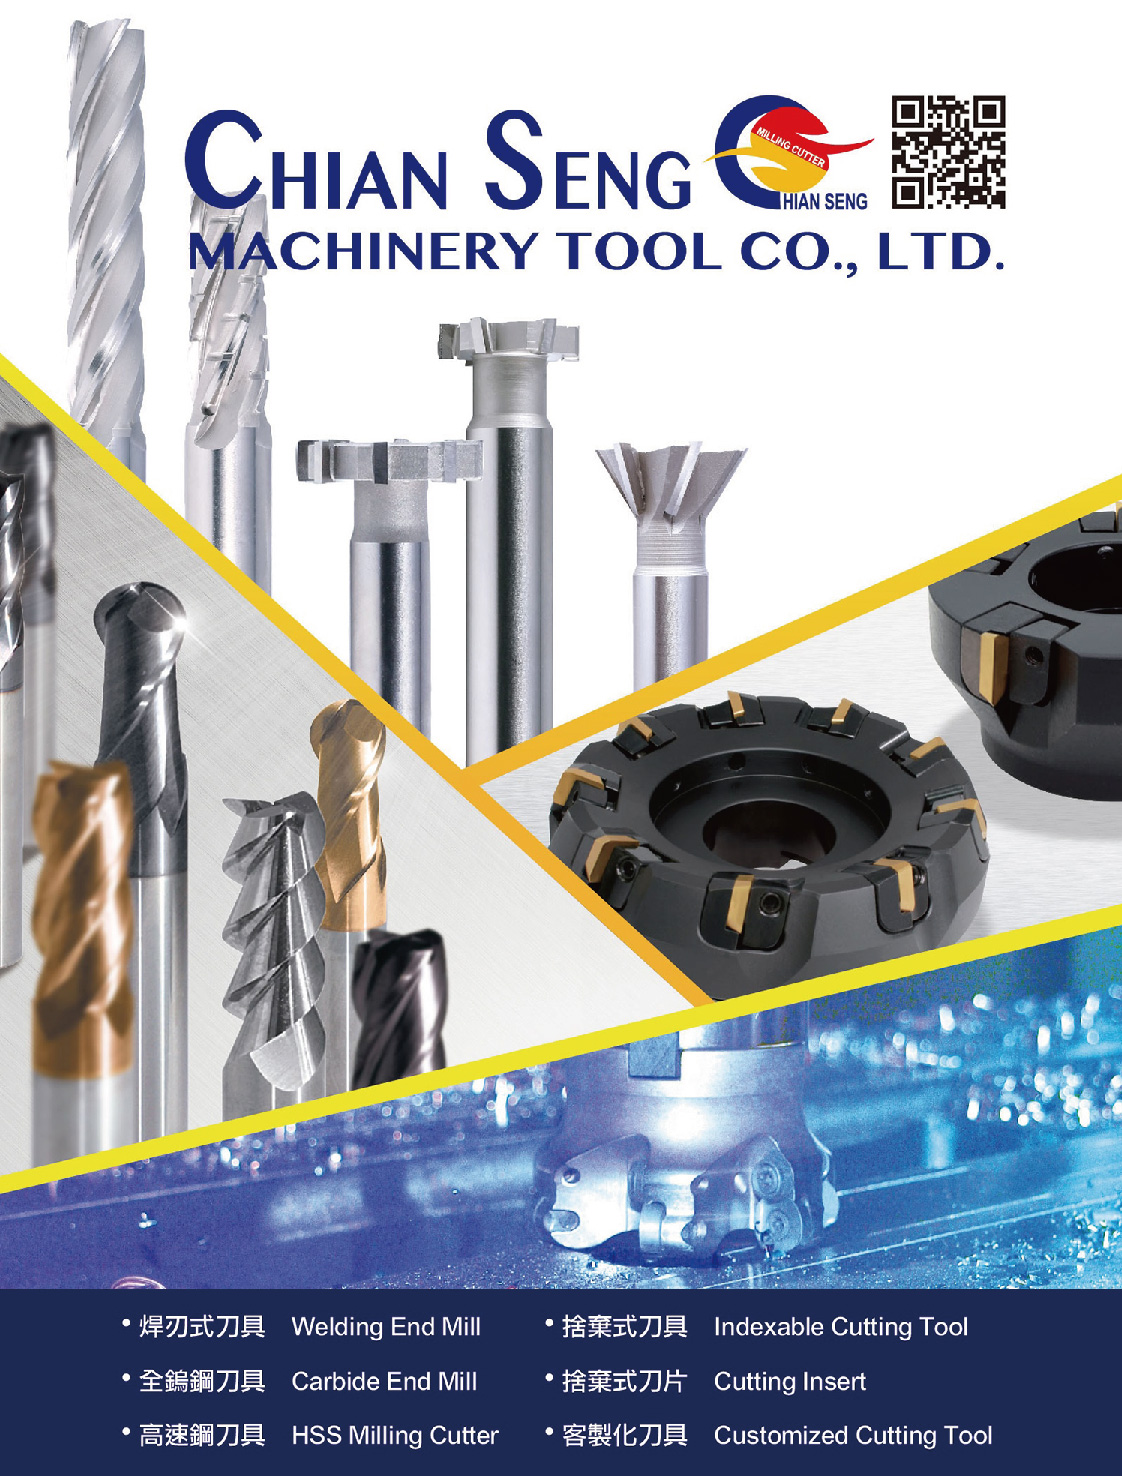 CHIAN SENG MACHINERY TOOL CO., LTD.